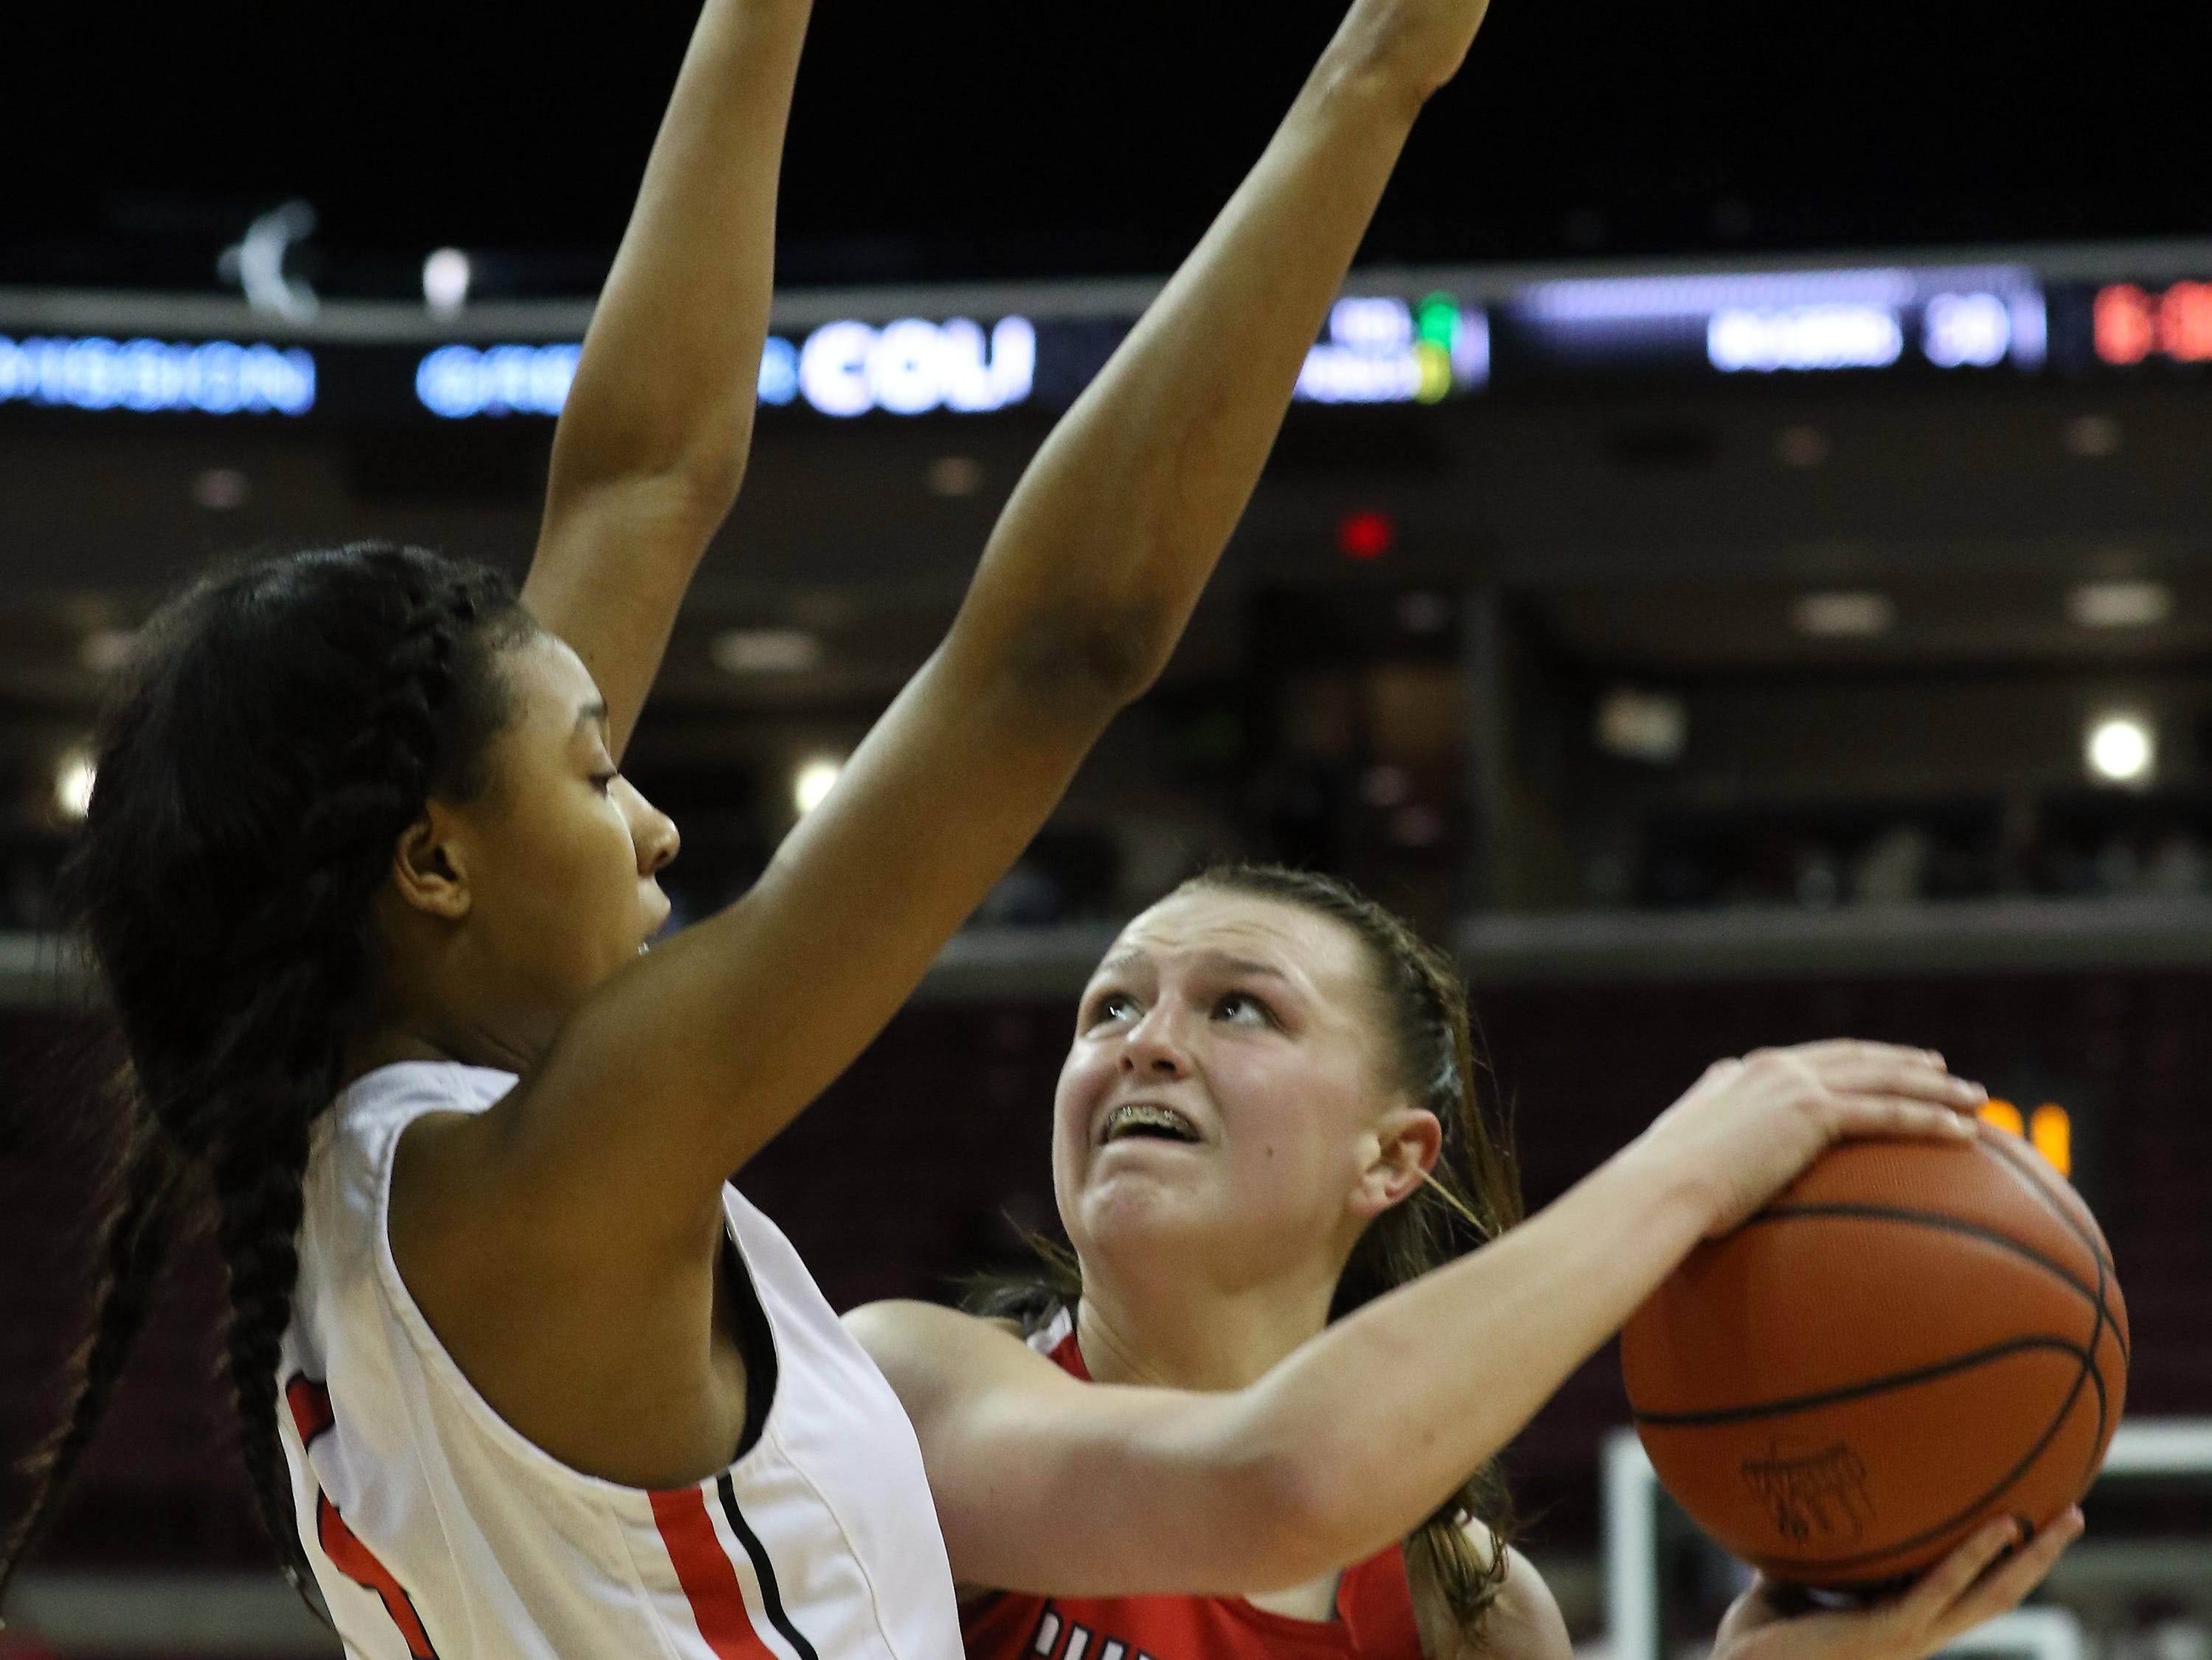 Sheridan's Faith Stinson fights to get off a shot against Toledo Rogers during the DII state semis in Columbus on Thursday.